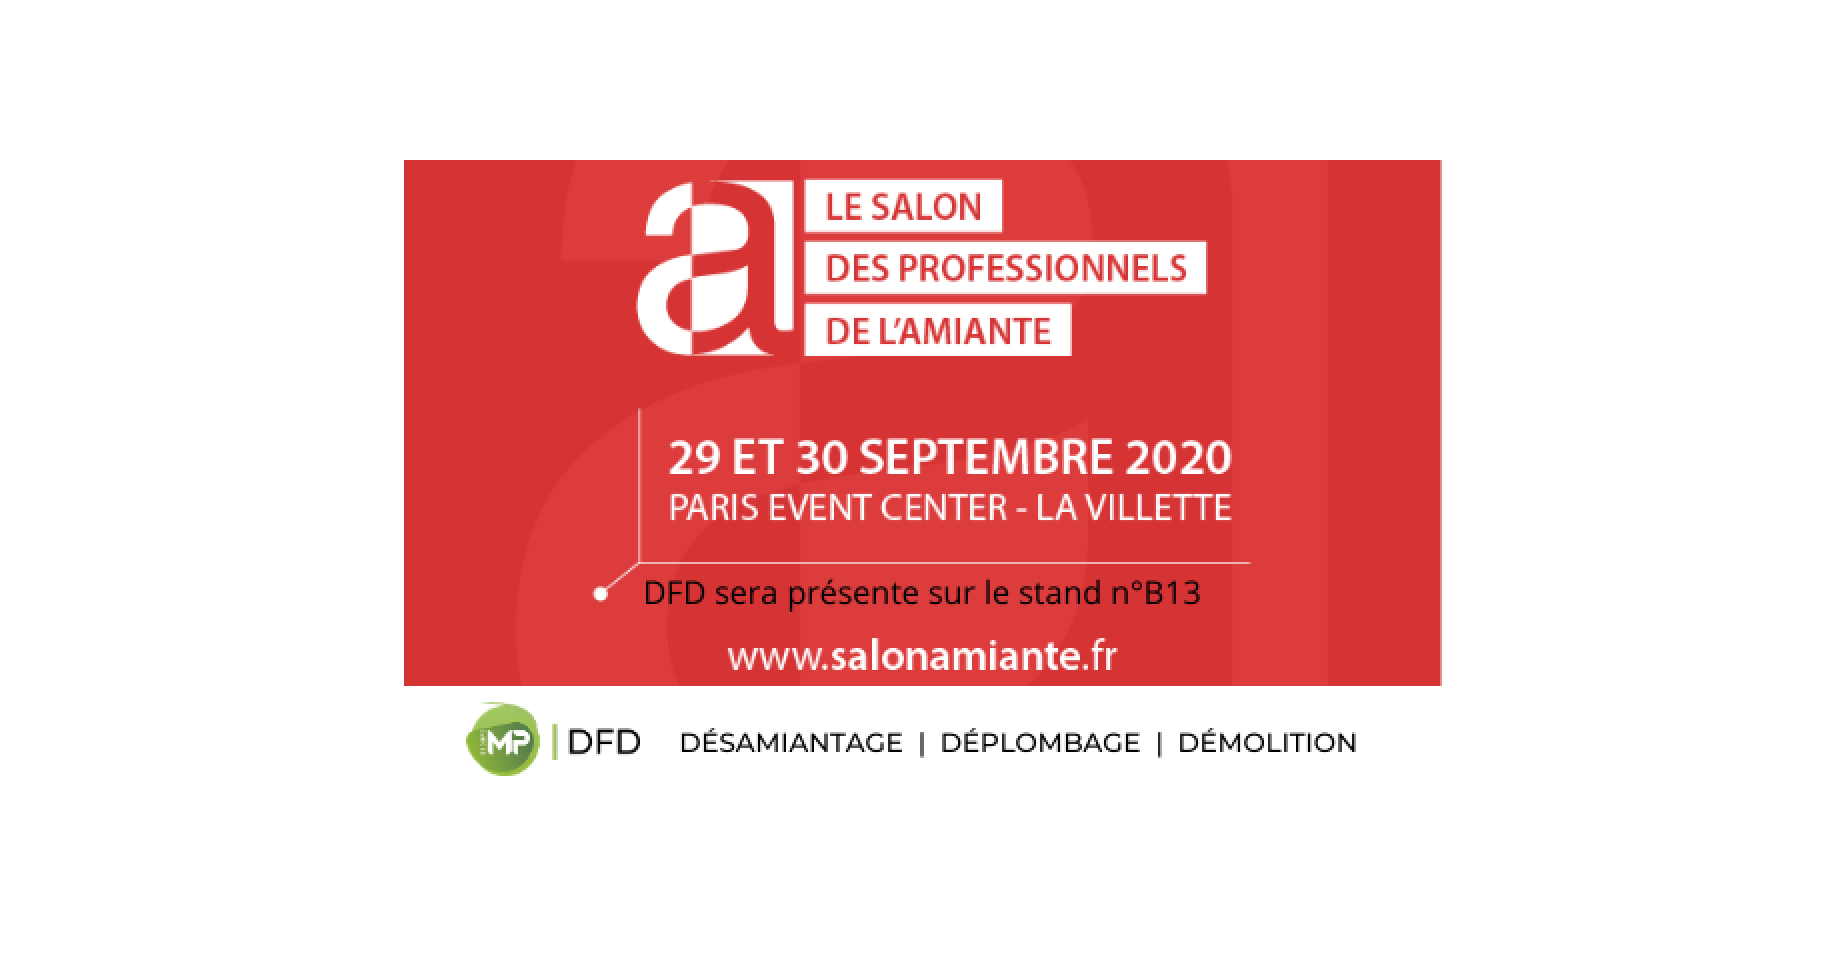 Salon des professionnels de l'amiante du 29 au 30 septembre